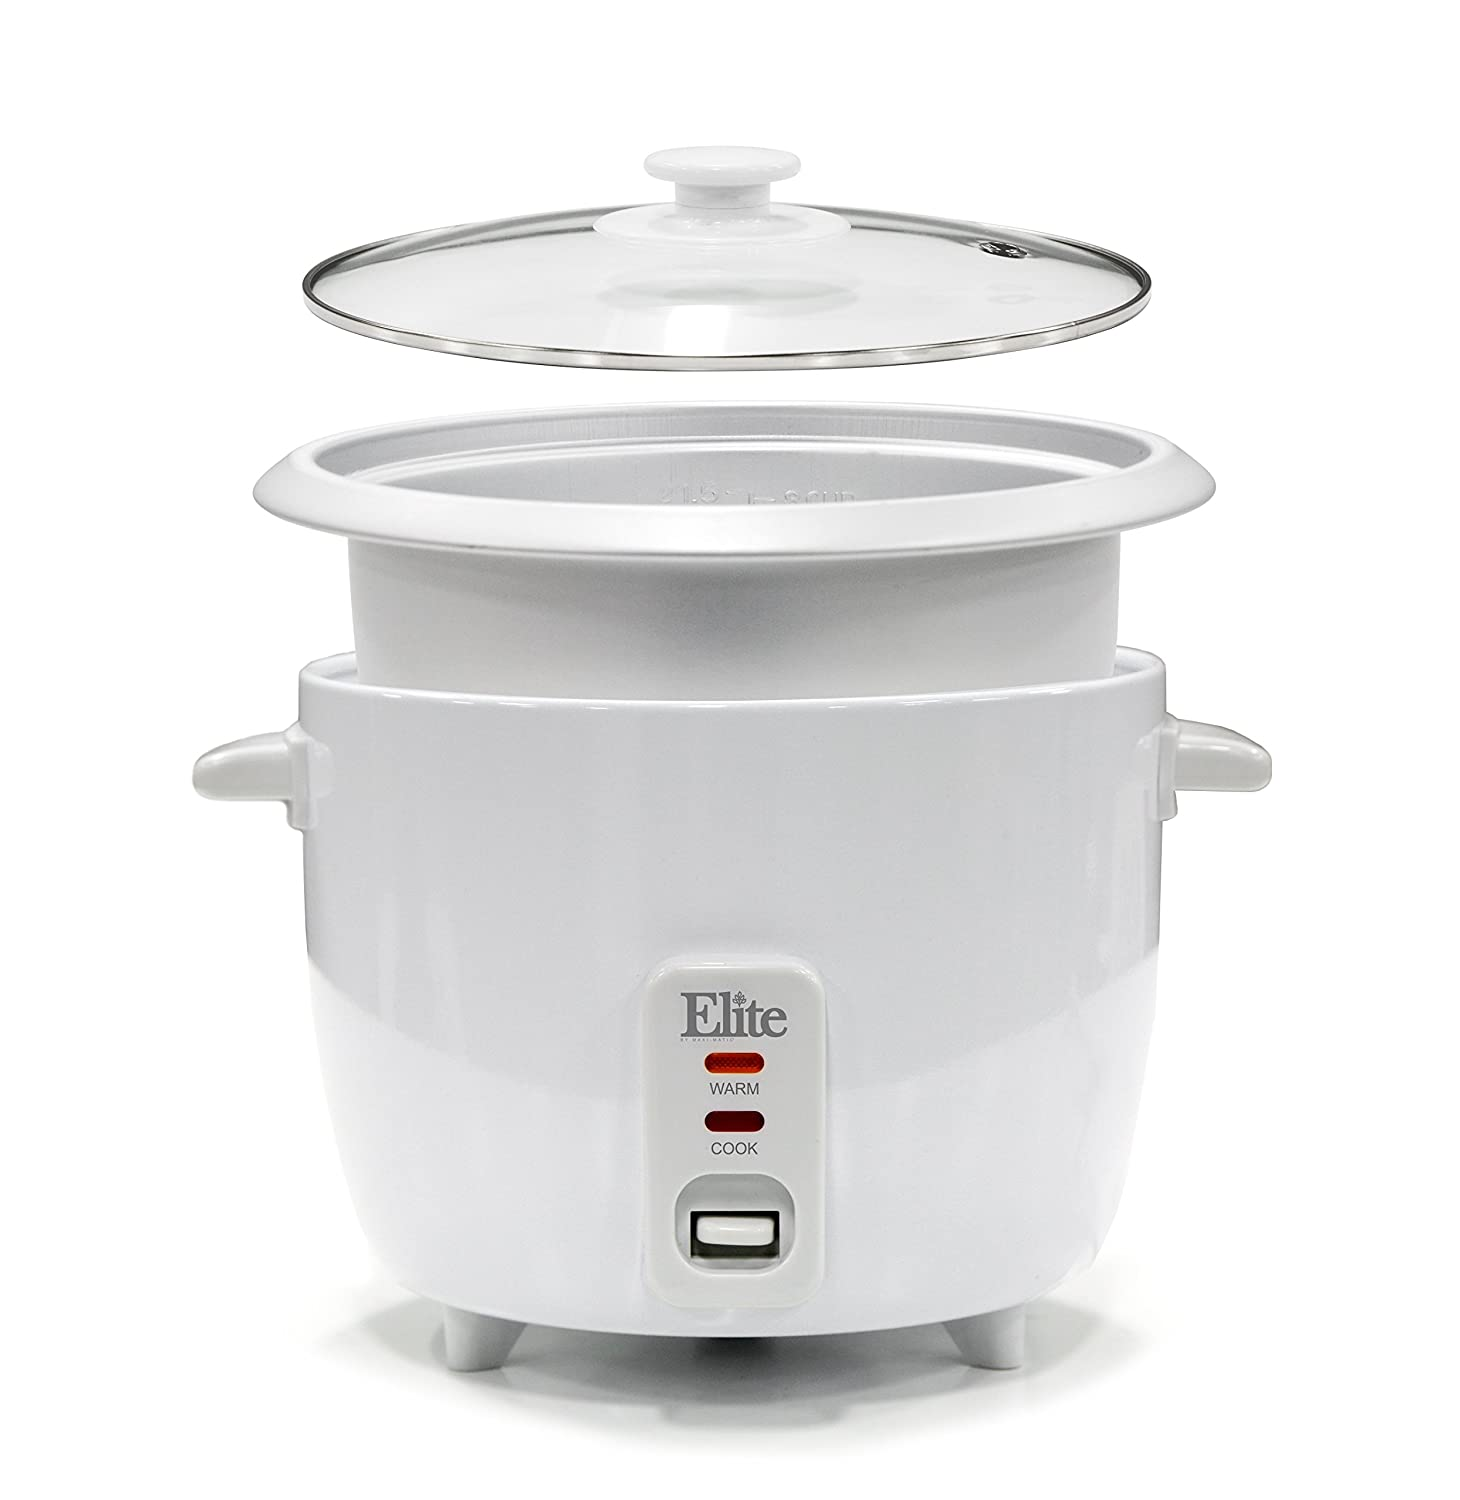 Amazon.com: Elite Cuisine ERC-003 Rice Cooker with Removable Pot, Glass  Lid, One-Touch Switch with Automatic Keep Warm Function, Makes Soups,  Stews, Grains, ...